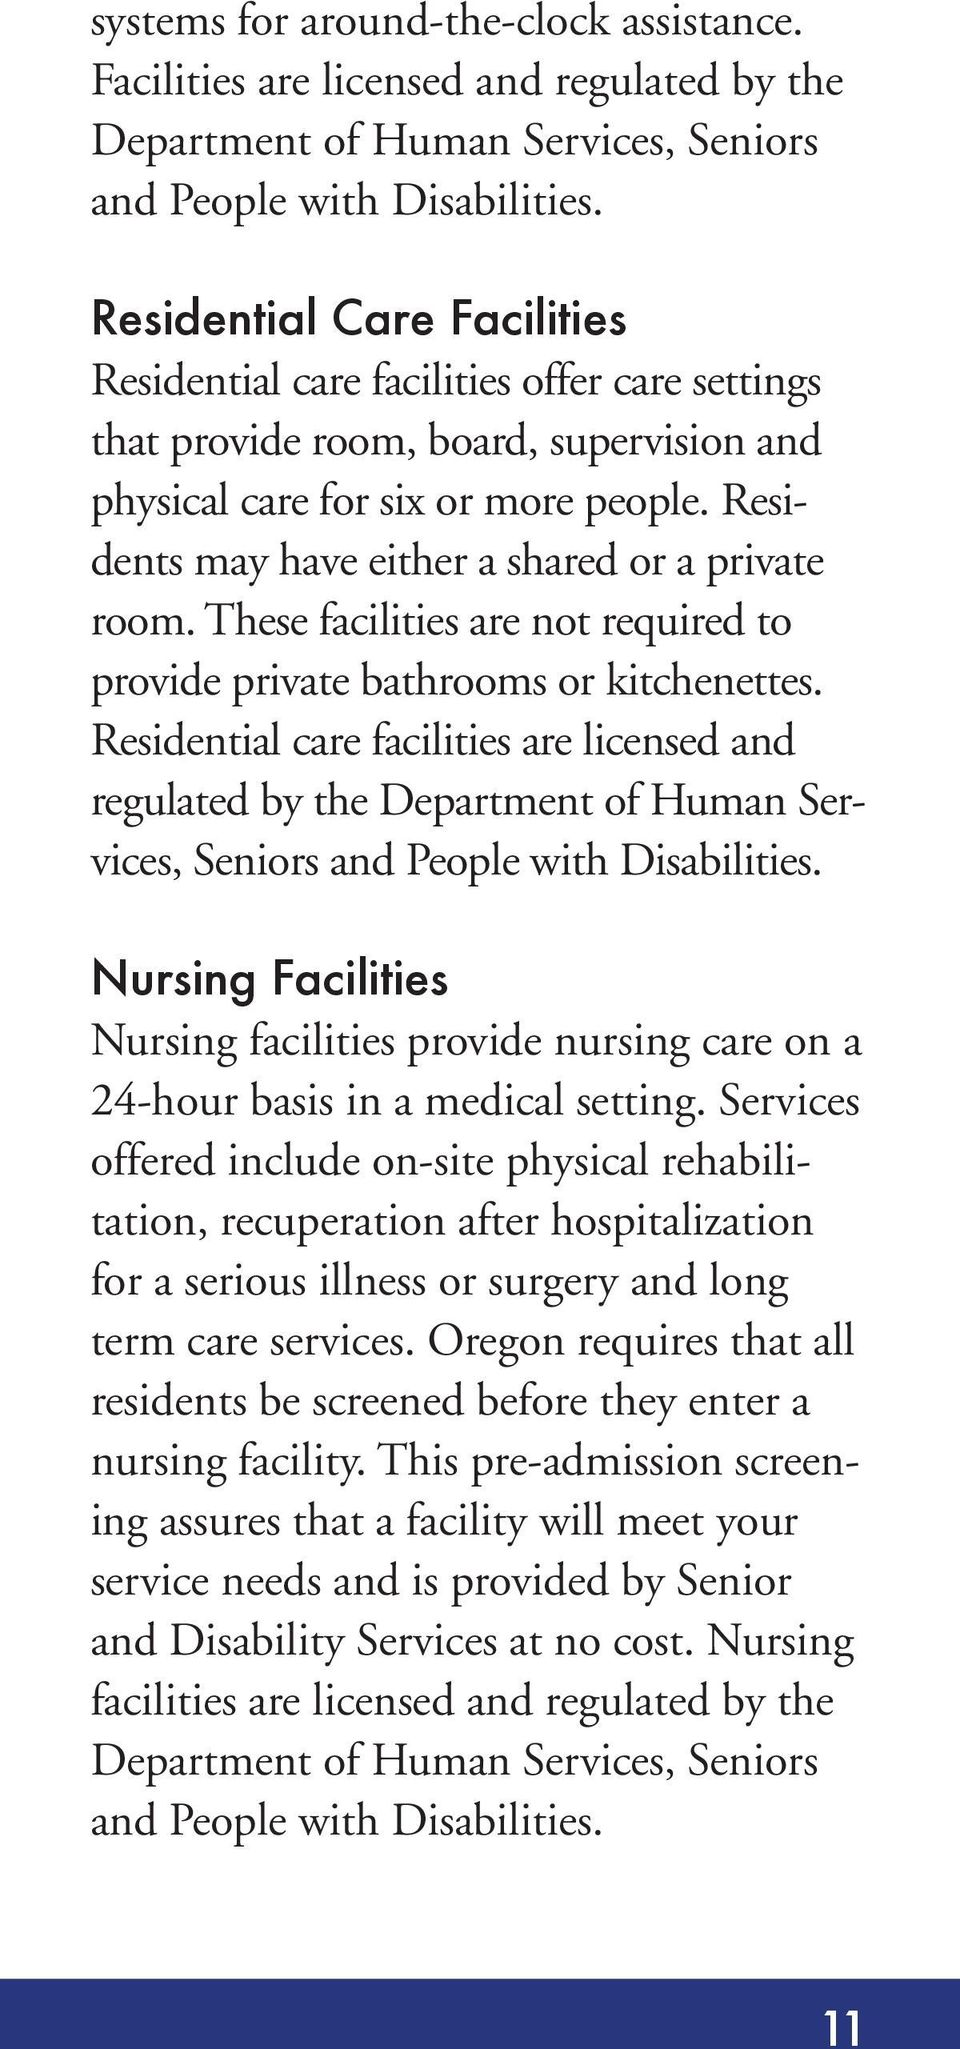 Residents may have either a shared or a private room. These facilities are not required to provide private bathrooms or kitchenettes.